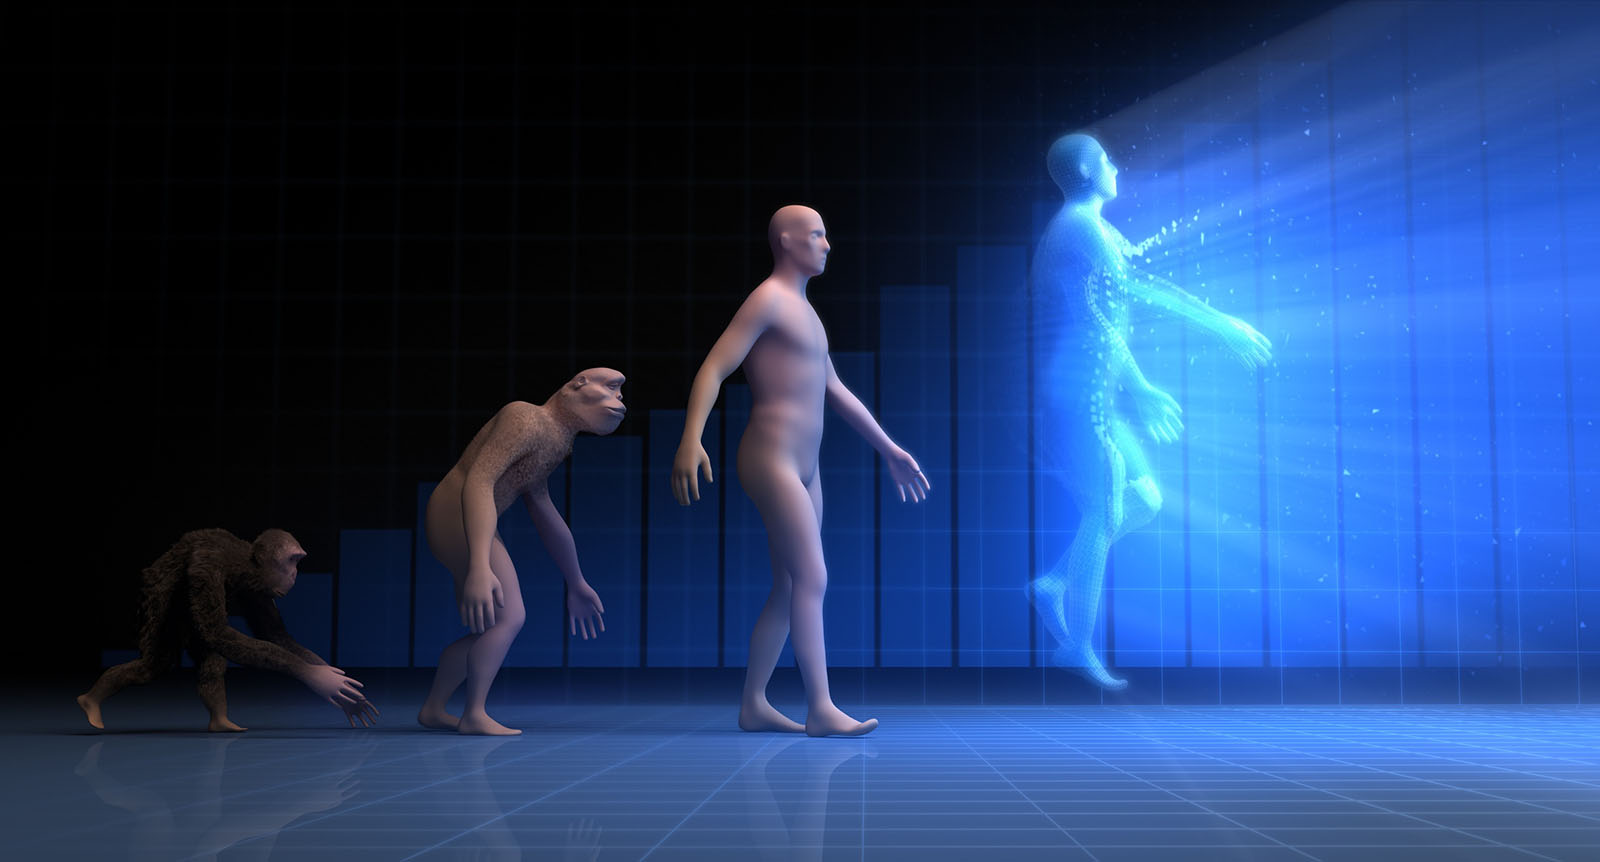 Science News Flash: Are Humans Still Evolving?